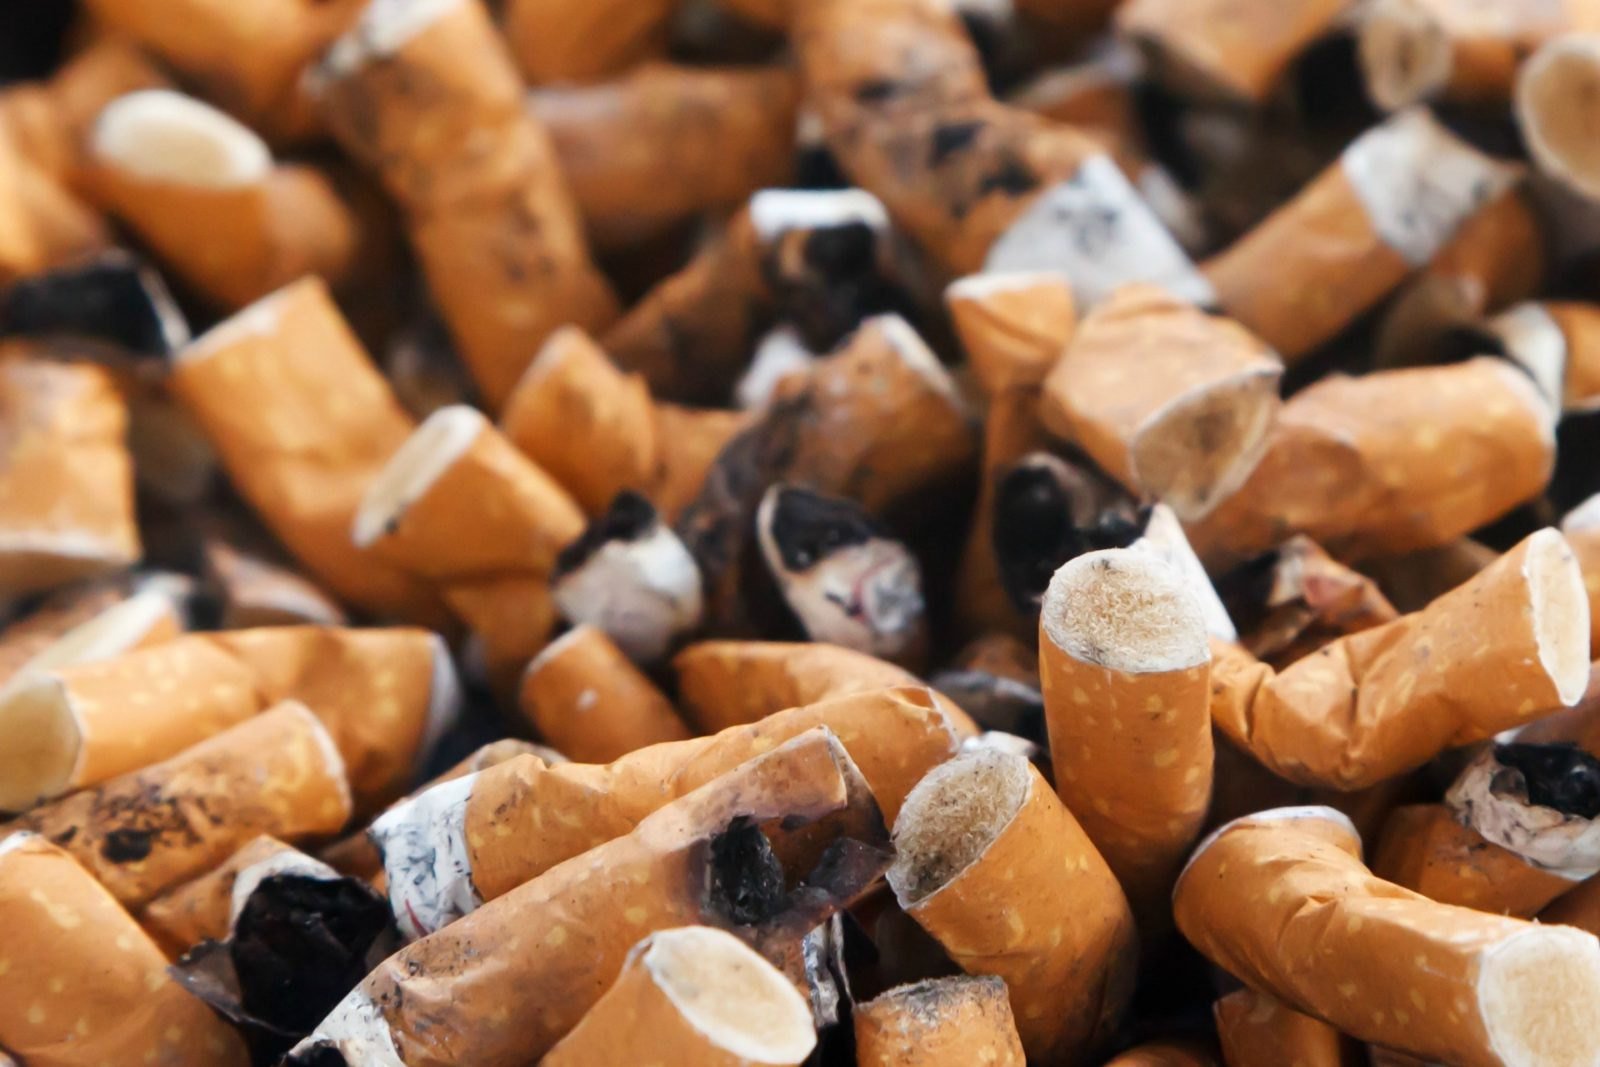 Smoking can increase the risk of gum disease.